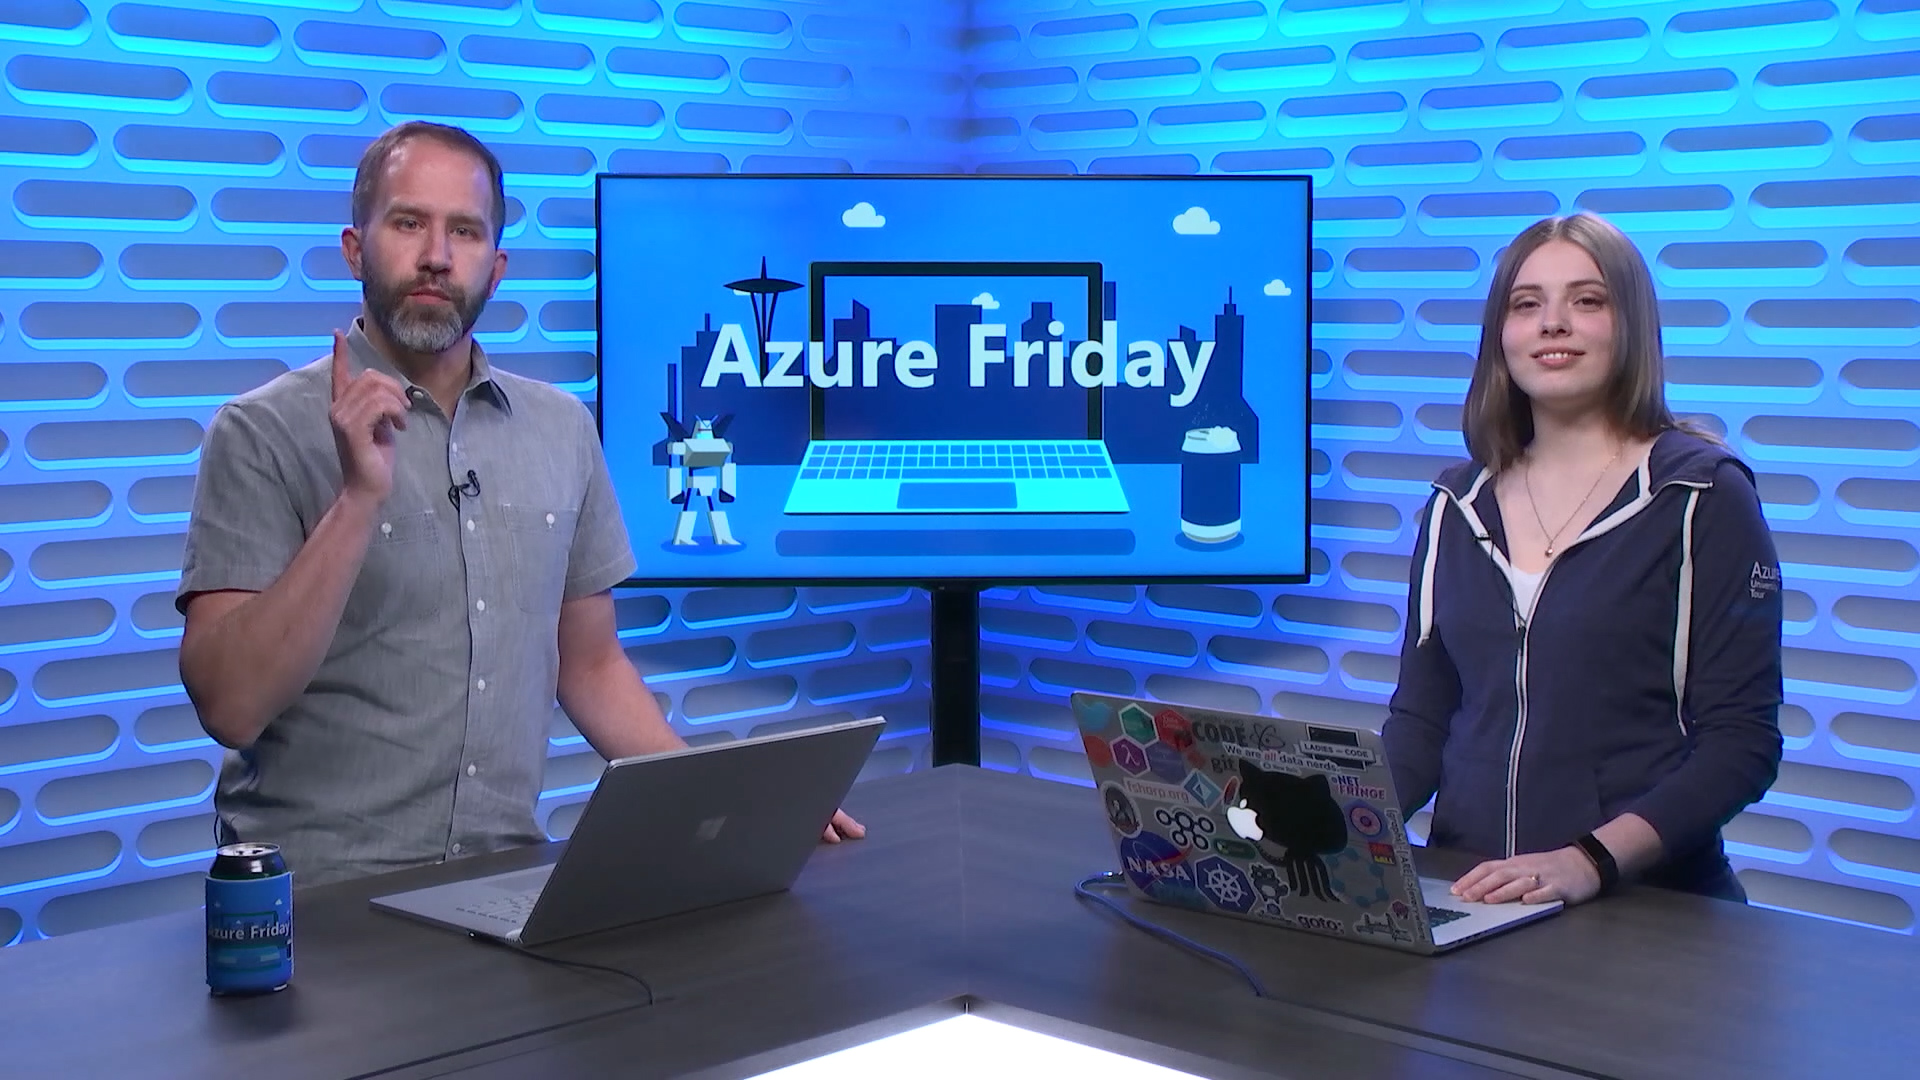 Go serverless: Big data processing with Azure Event Hubs for Apache Kafka